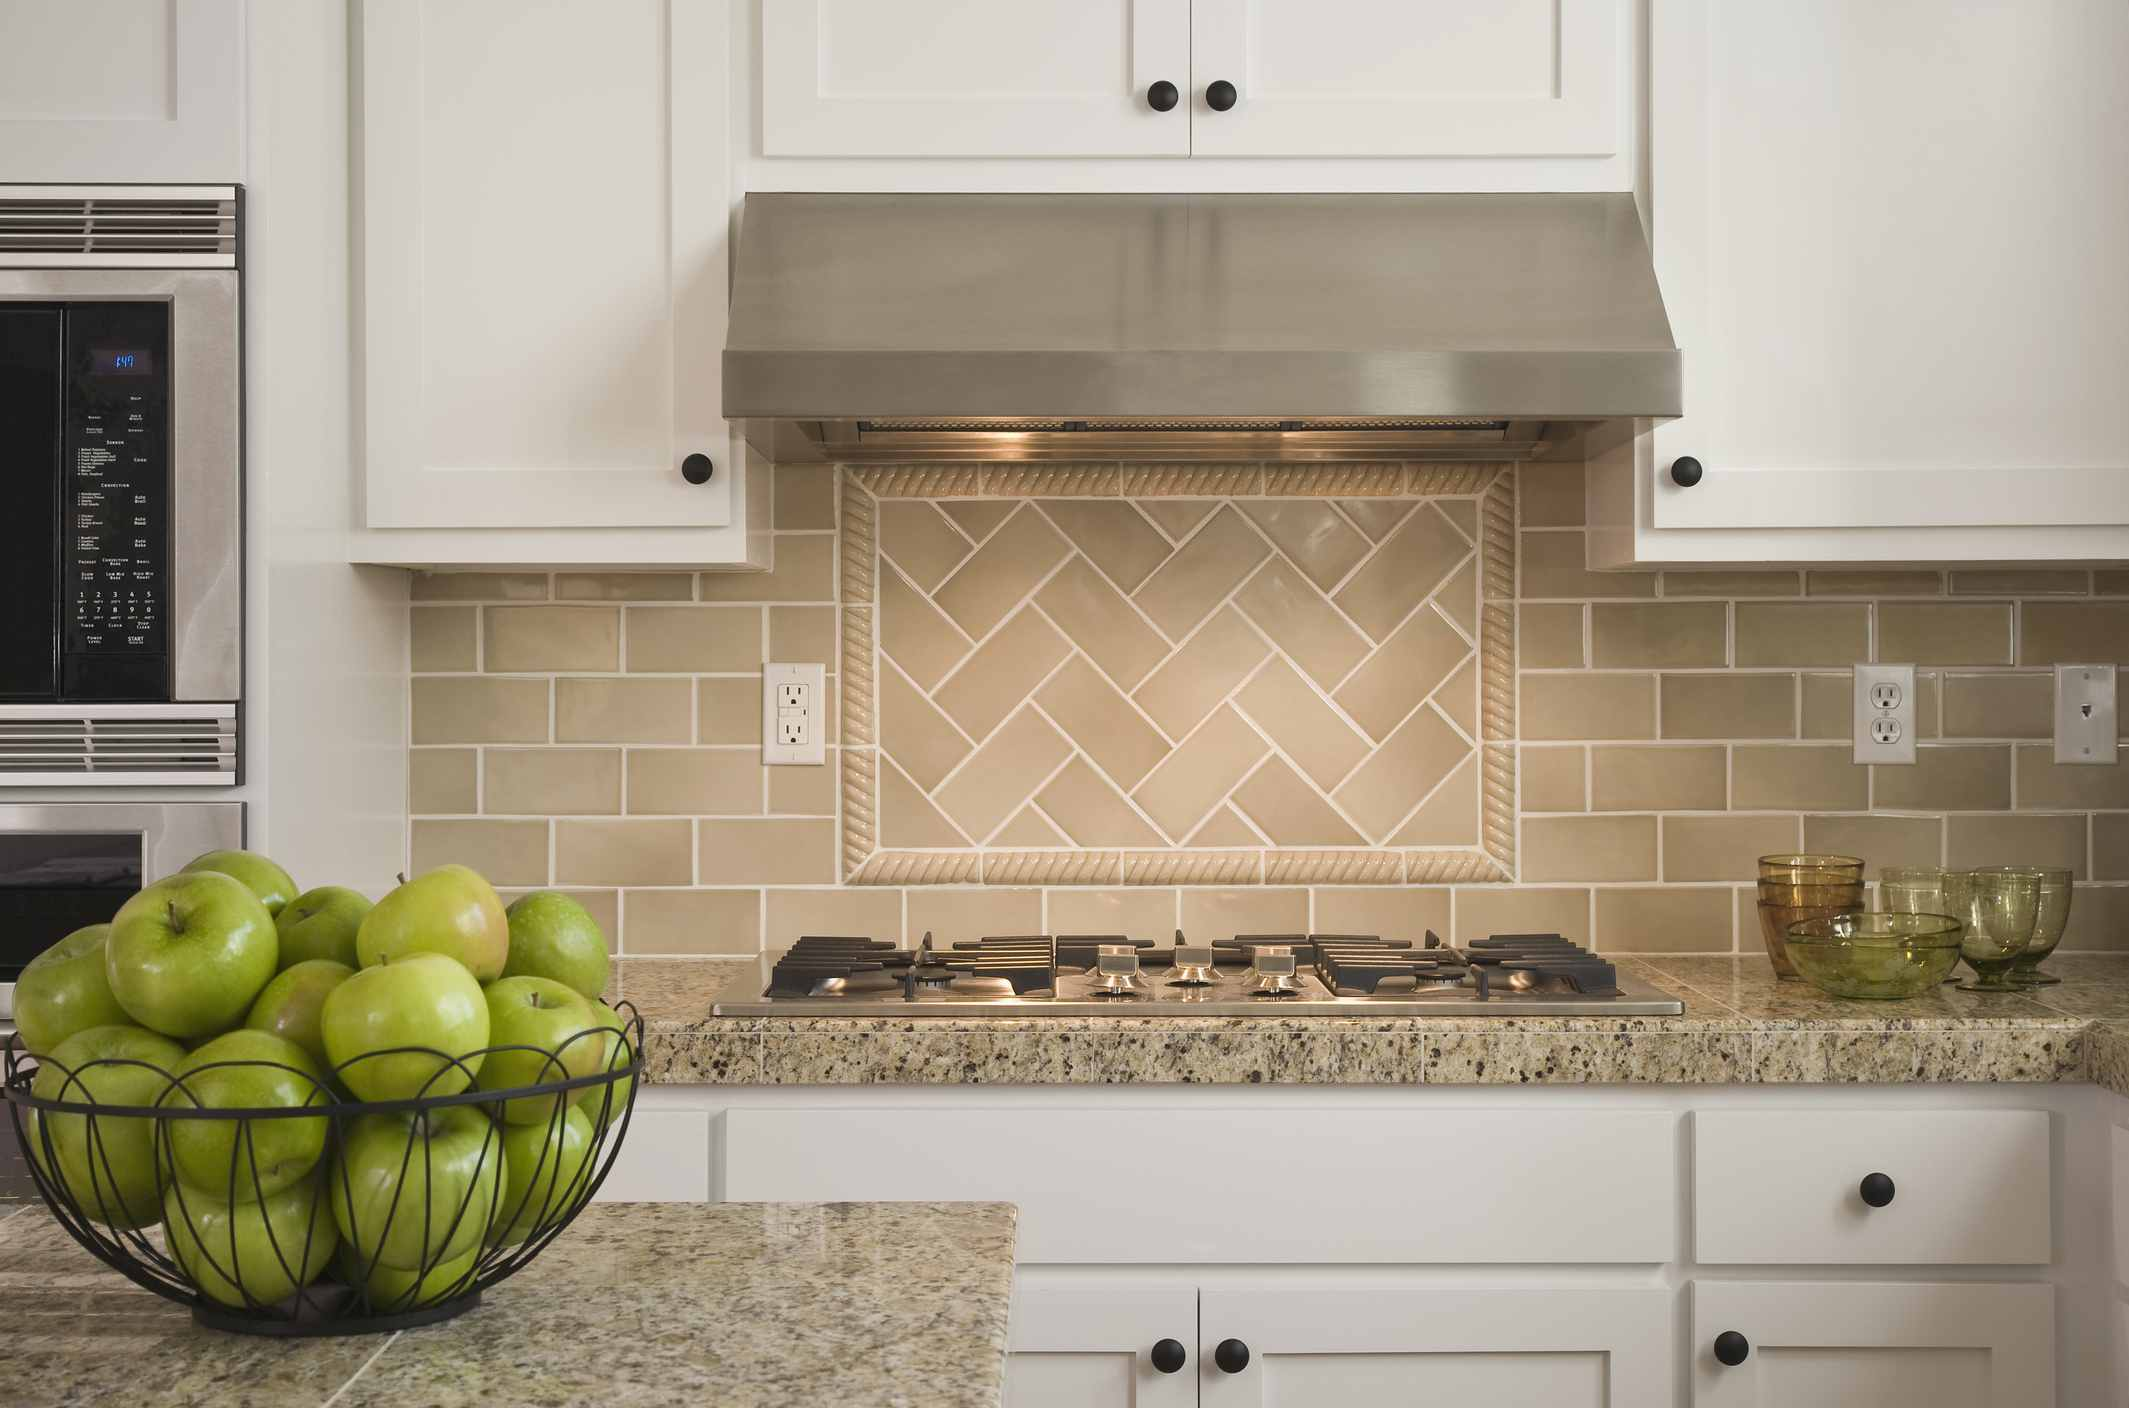 Ideas To Spruce Up Your Backsplash In The Kitchen